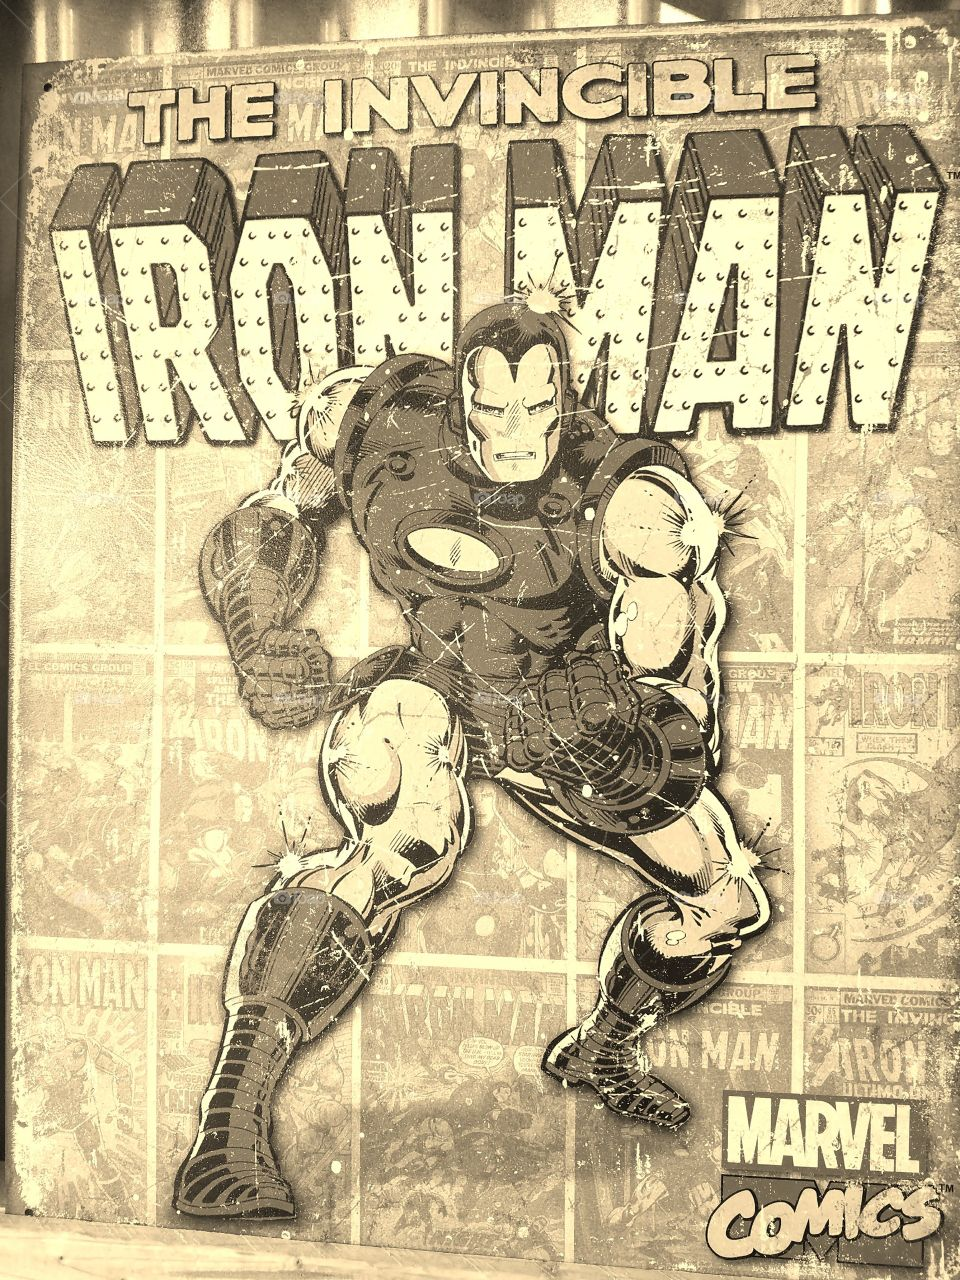 The Invincible Iron Man - Marvel Comics.  Poster in Sepia.